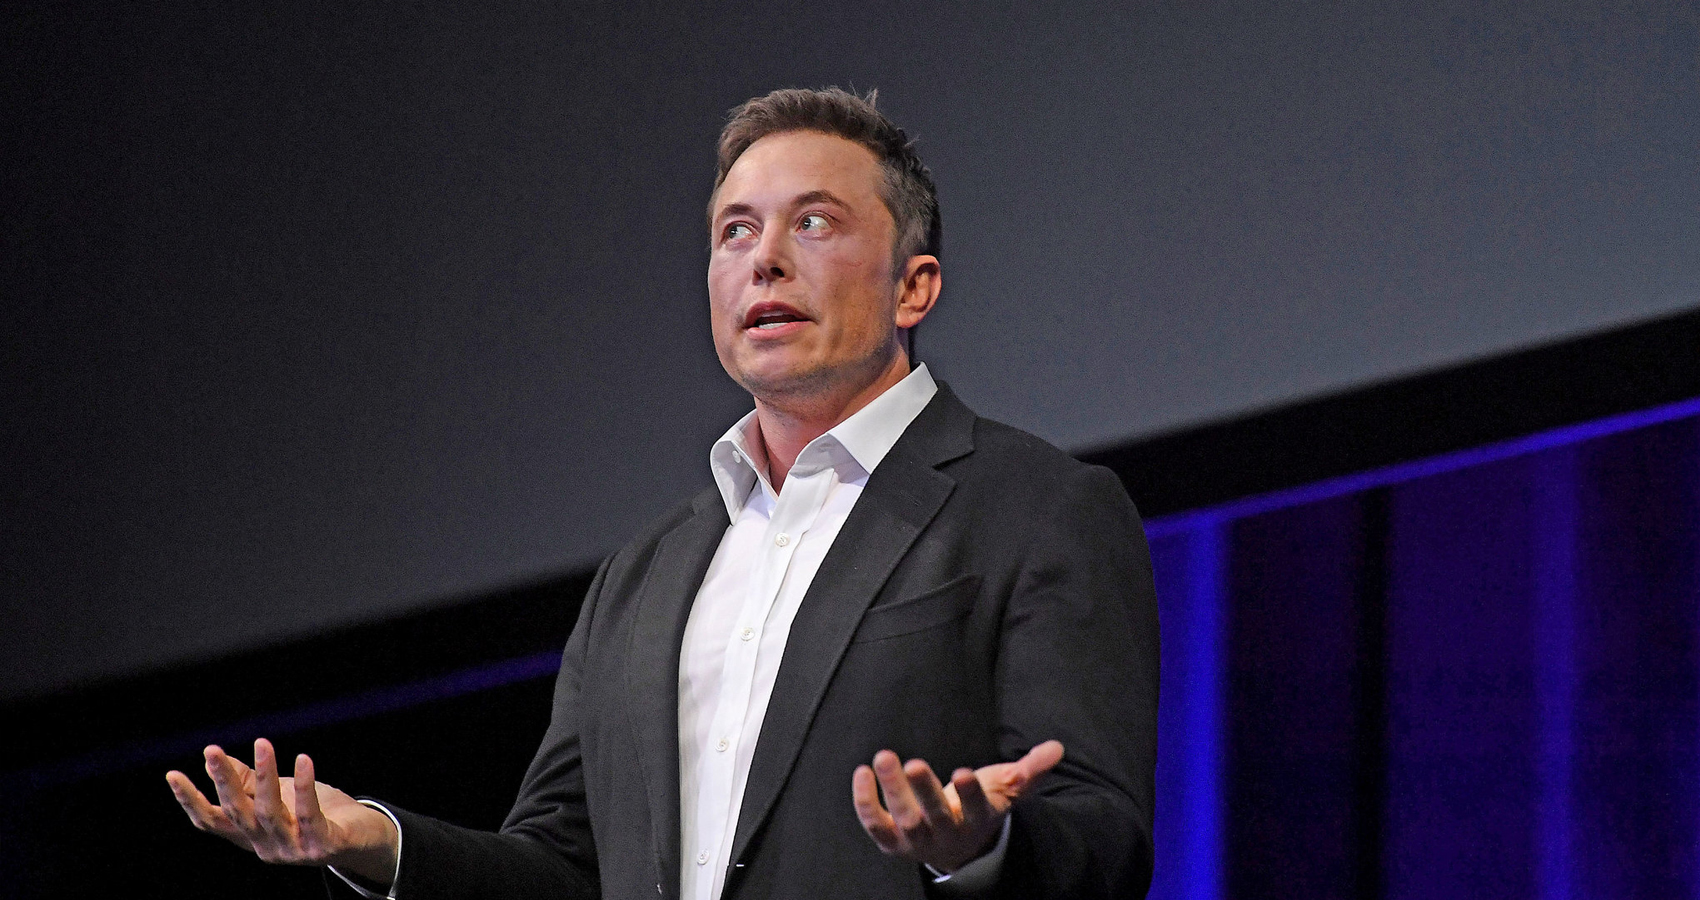 Is it possible that elon Musk will go to jail